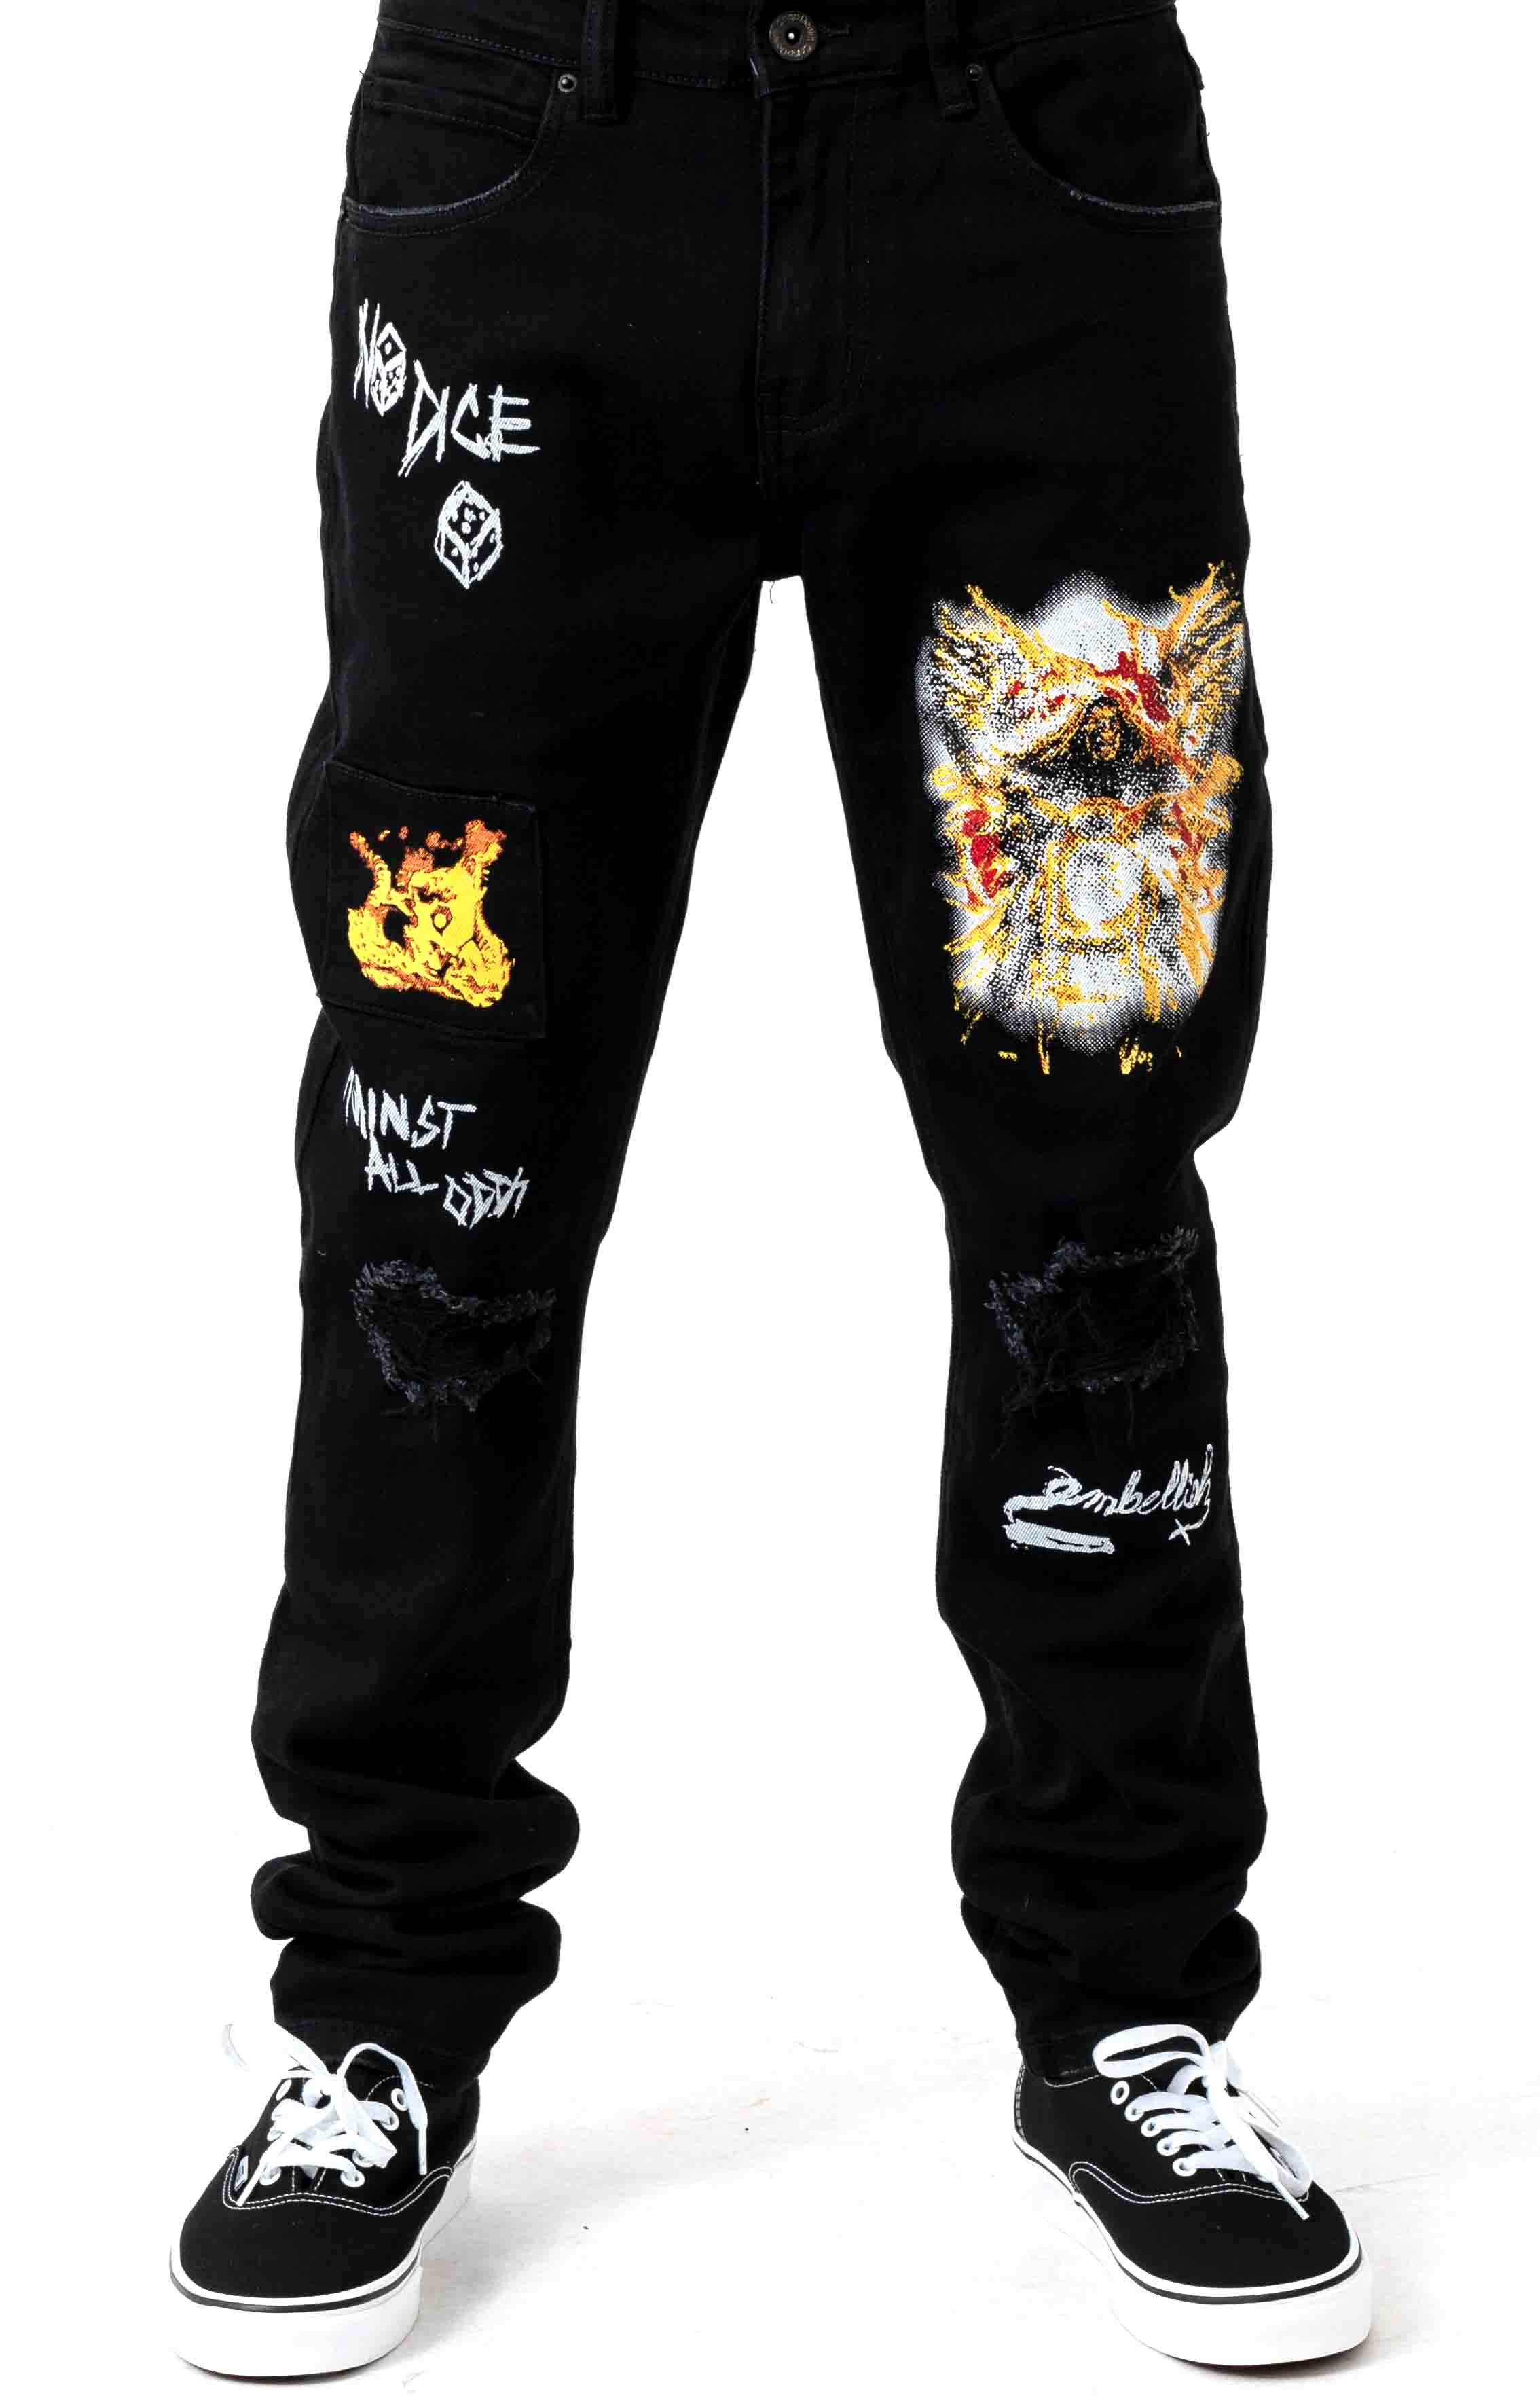 (CRYH19-140) Nowell Painted Denim Jeans - Black Painted 2